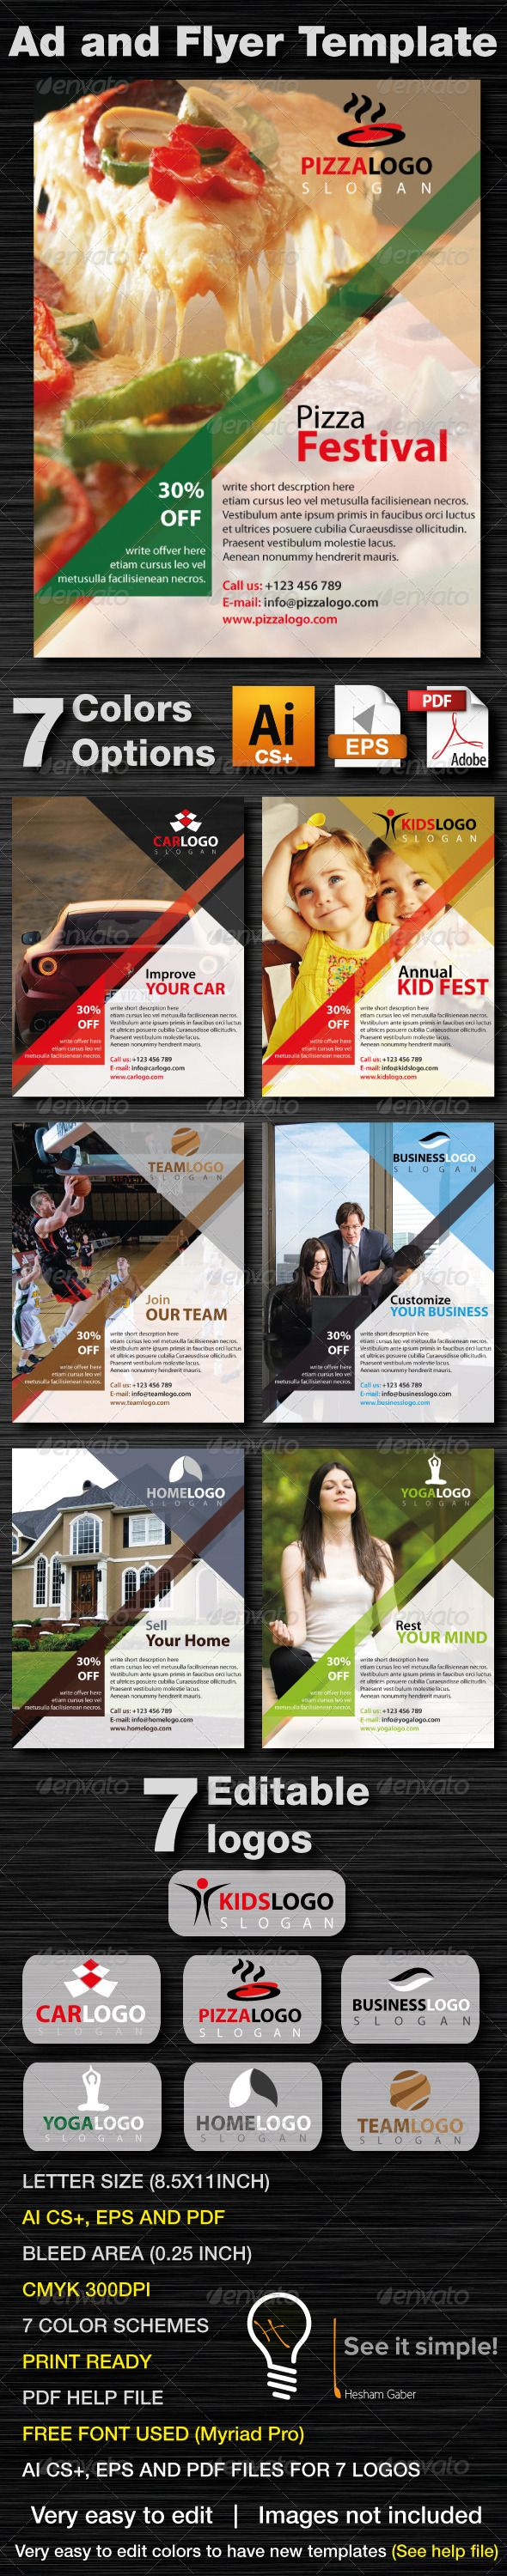 ideas about business flyers business flyer ad and business flyer template 7 colors